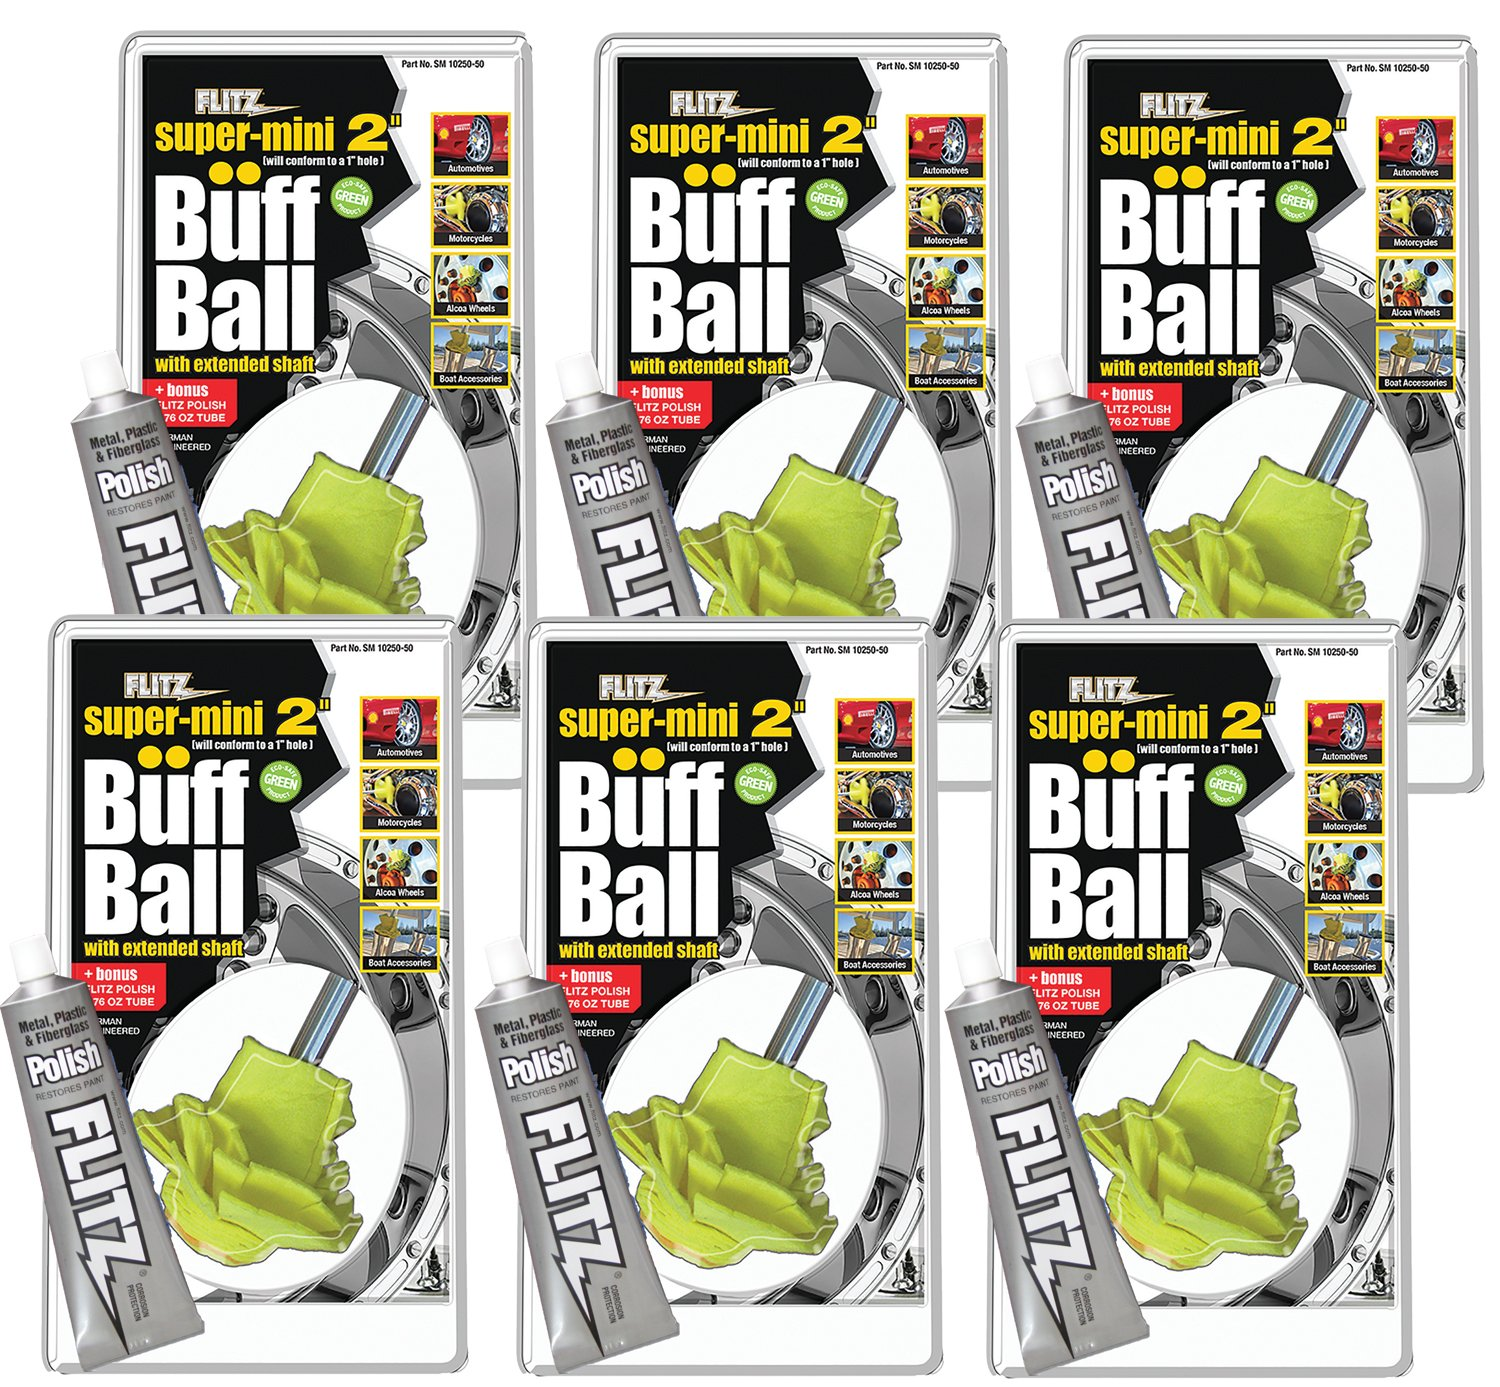 Flitz SM 10250-50 Yellow Original Super Mini Buff Balls in Clamshell, 2-Inch